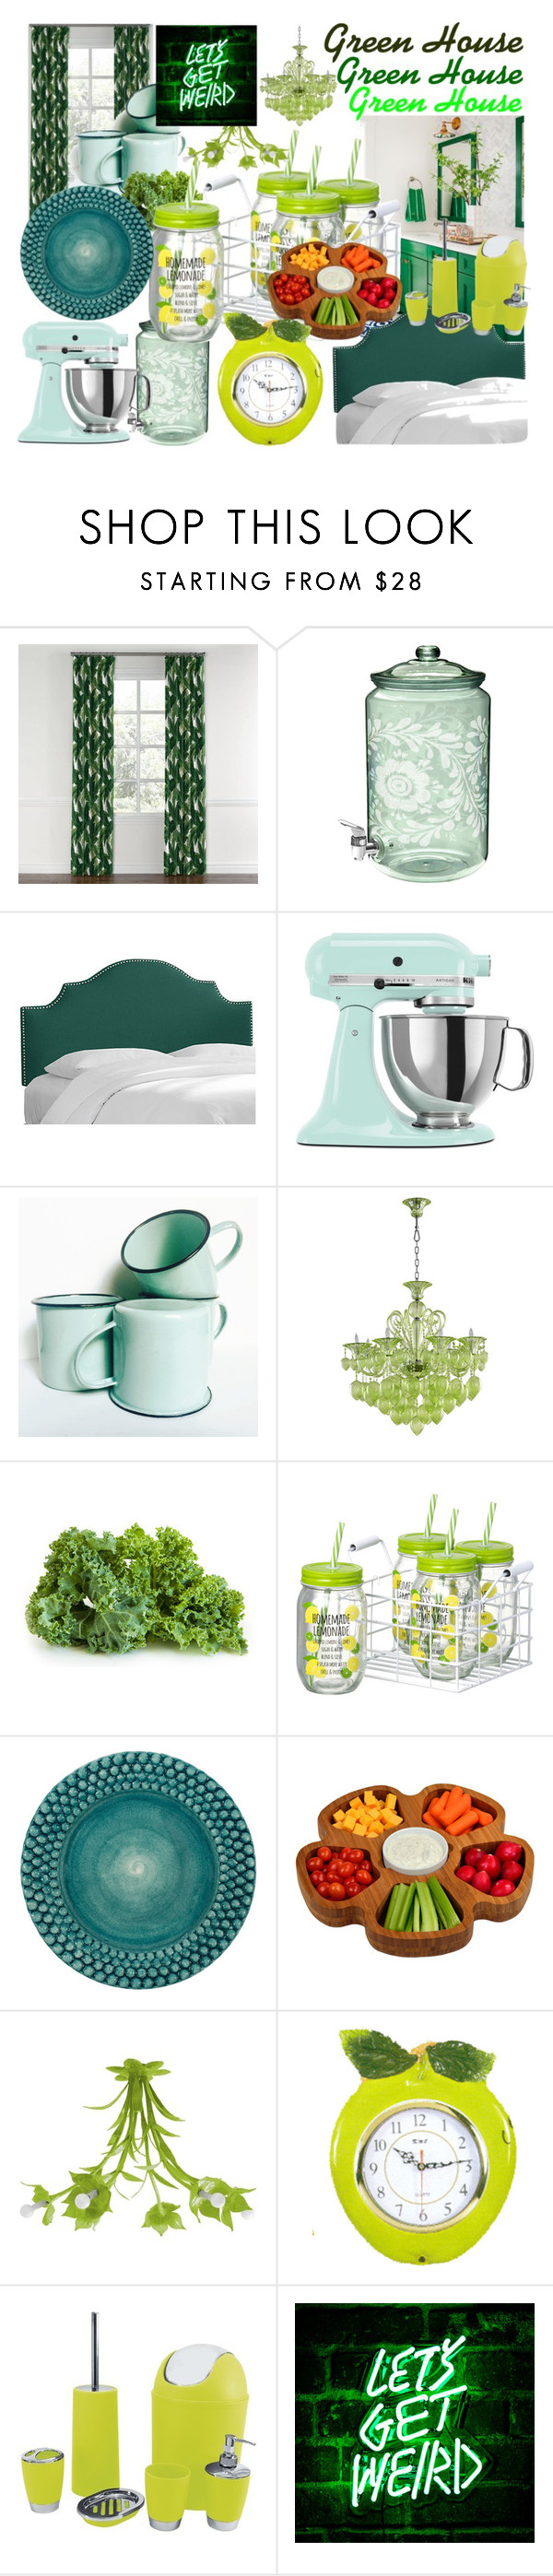 """""""Green House"""" by taradactyl22 on Polyvore featuring interior, interiors, interior design, home, home decor, interior decorating, Thos. Baker, KitchenAid, Mateus and Picnic at Ascot"""